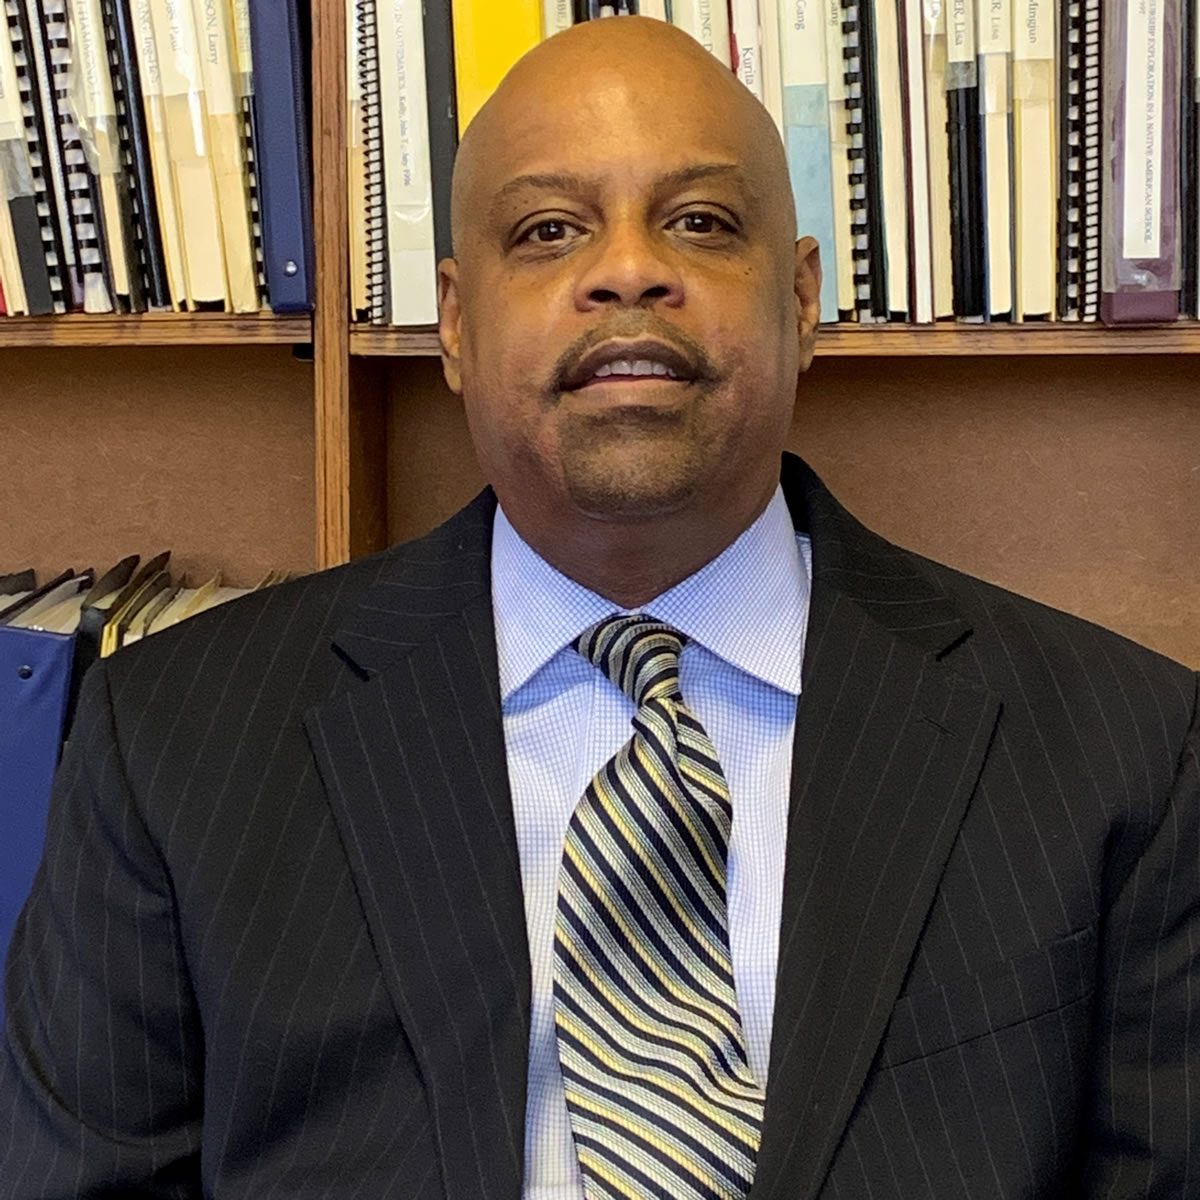 Dr. Fredrick Douglass Dixon is the featured lecturer as part of the Black History Month celebration at Motlow State. Dixon, an expert in African American Studies, will speak on Tuesday, Feb. 12 for two lectures at 9:40 a.m. and 11:10 a.m. at Powers Auditorium in Eoff Hall on the Motlow Moore County campus. The public is invited.